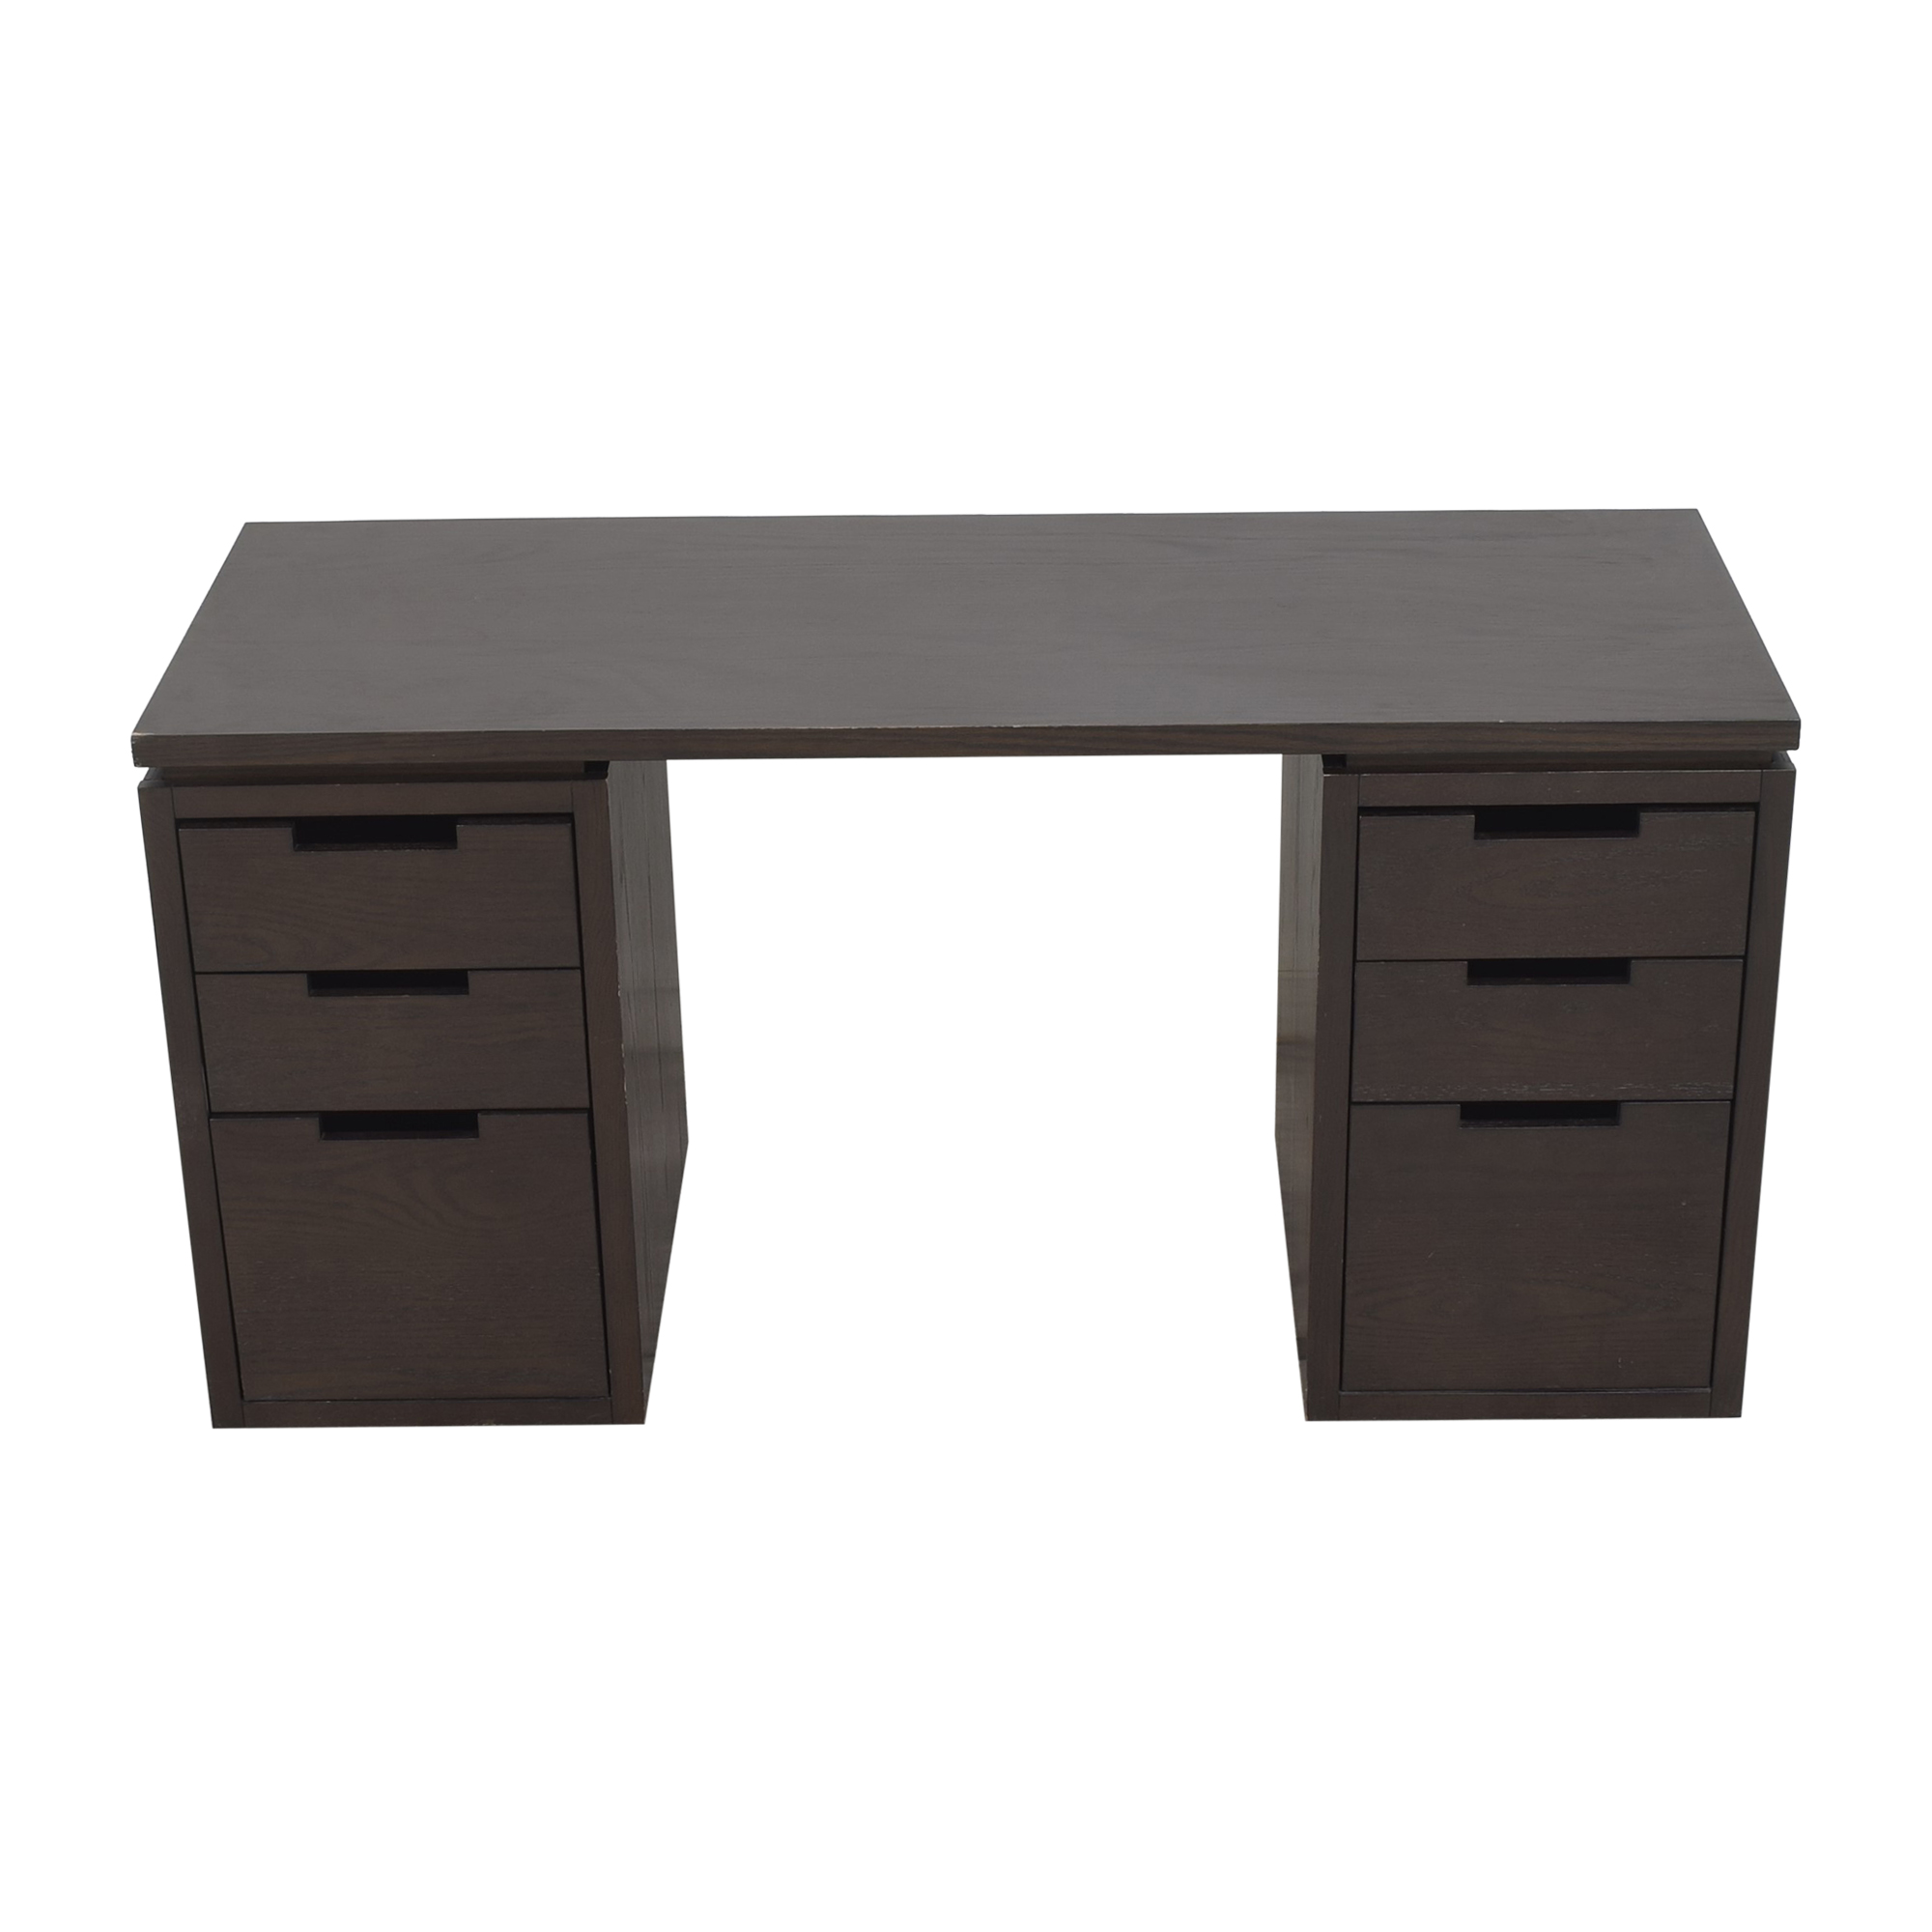 West Elm West Elm Modular Office Basic Desk second hand